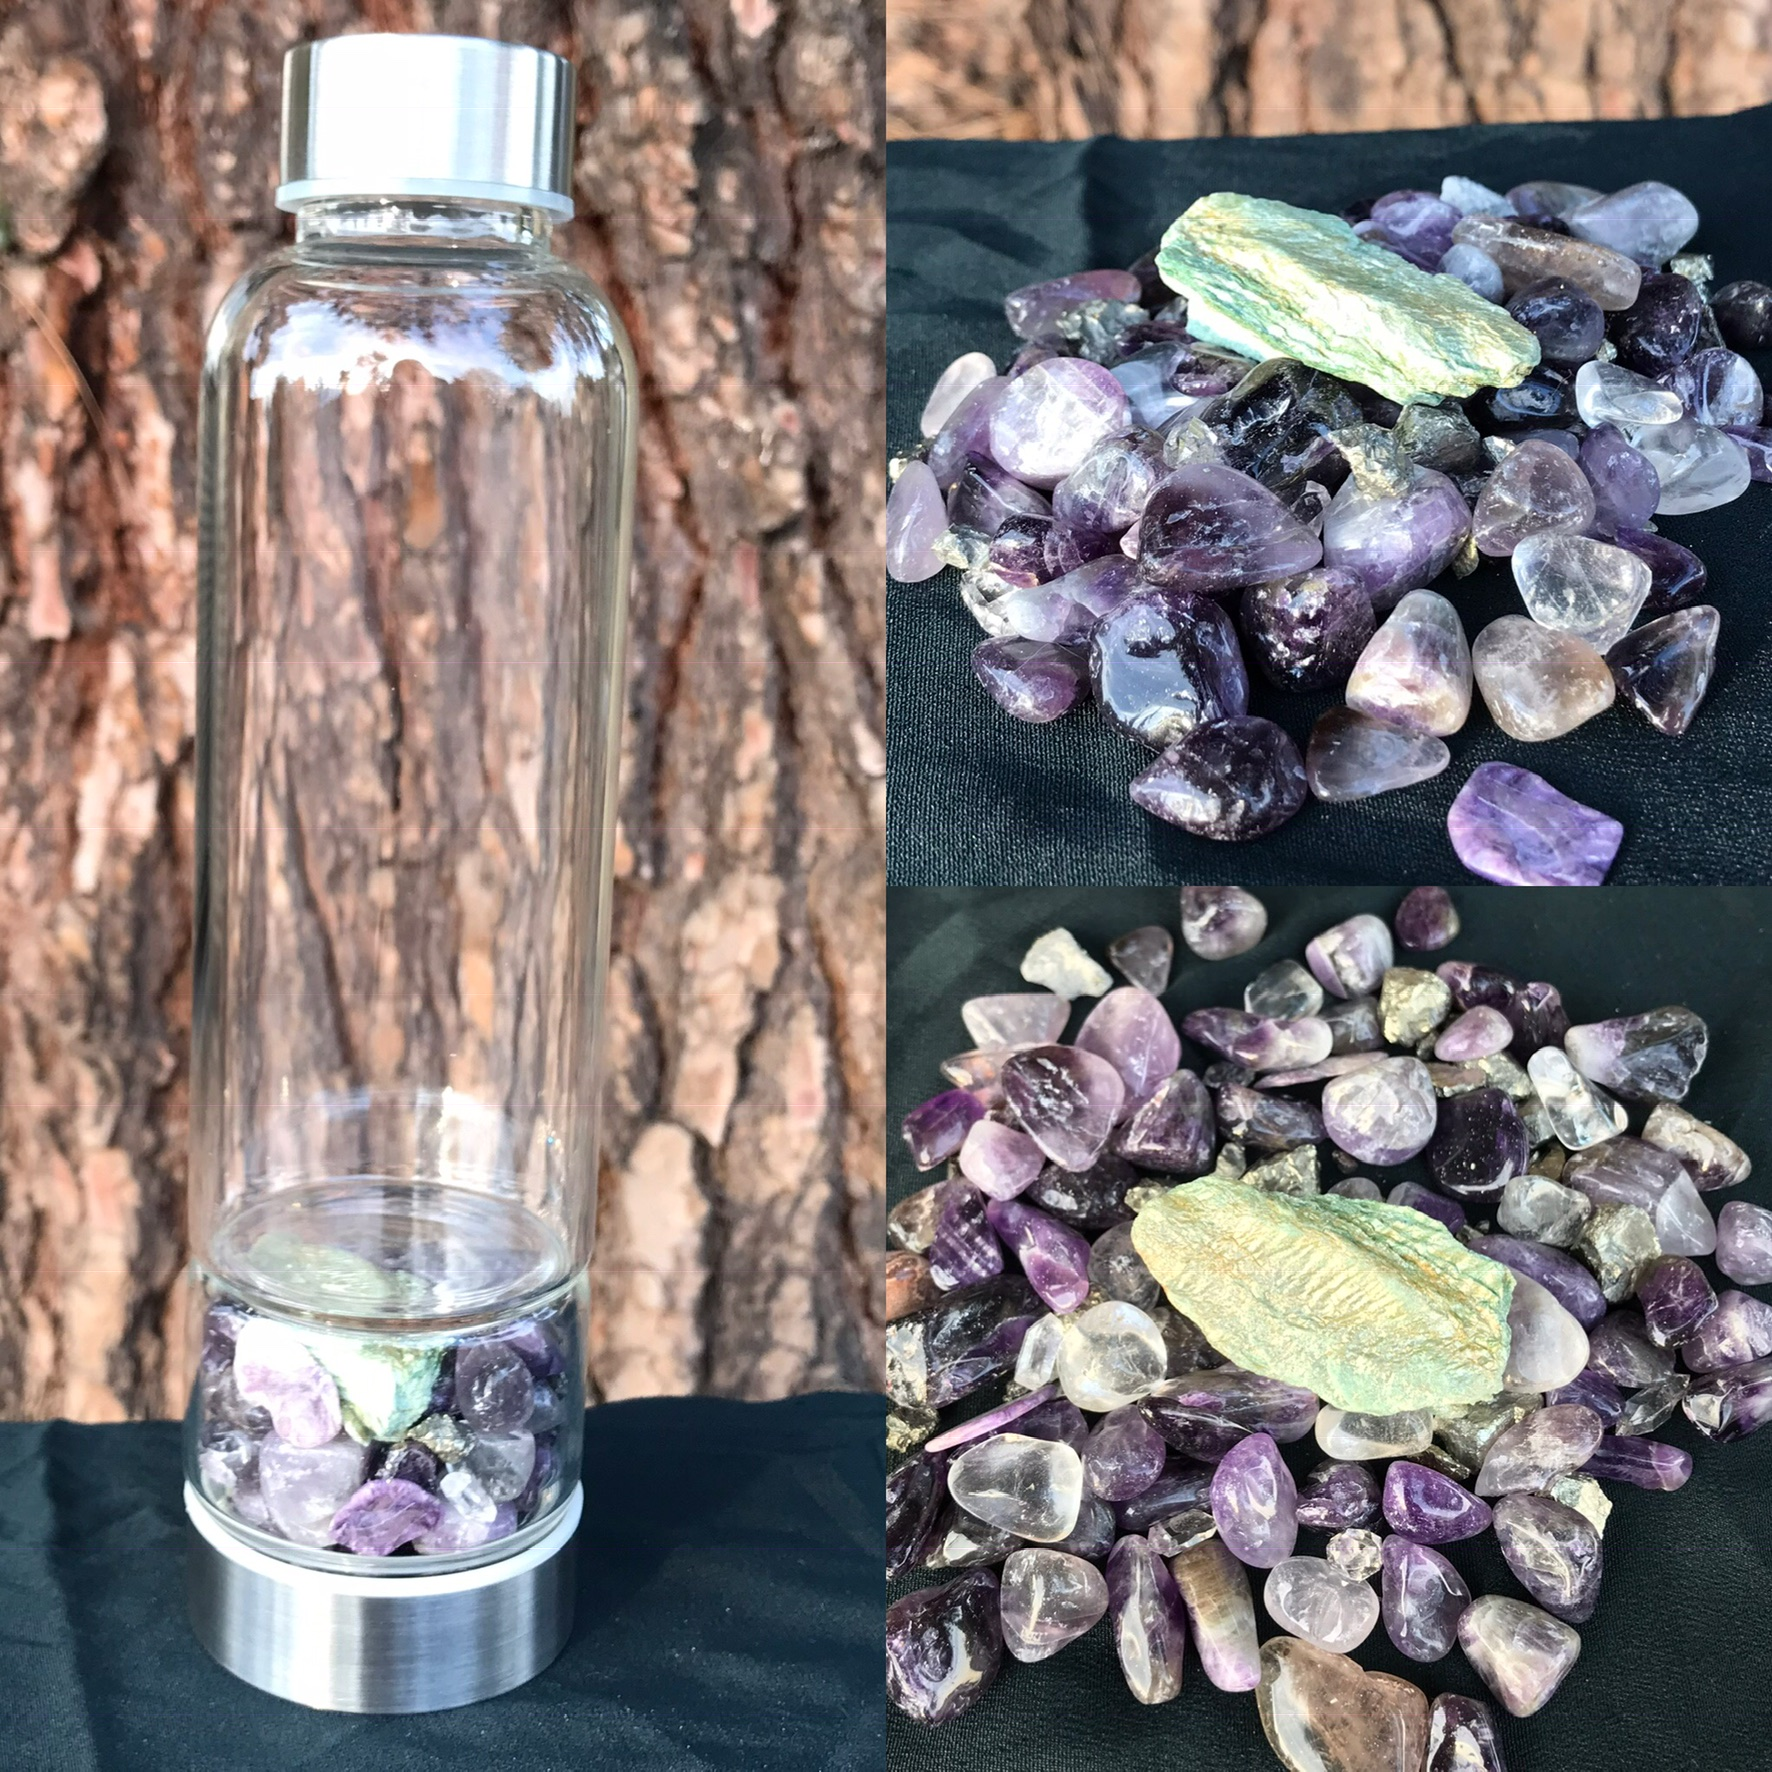 Custom Crystal Elixir Water Bottle sold by Moon Worm Crystals